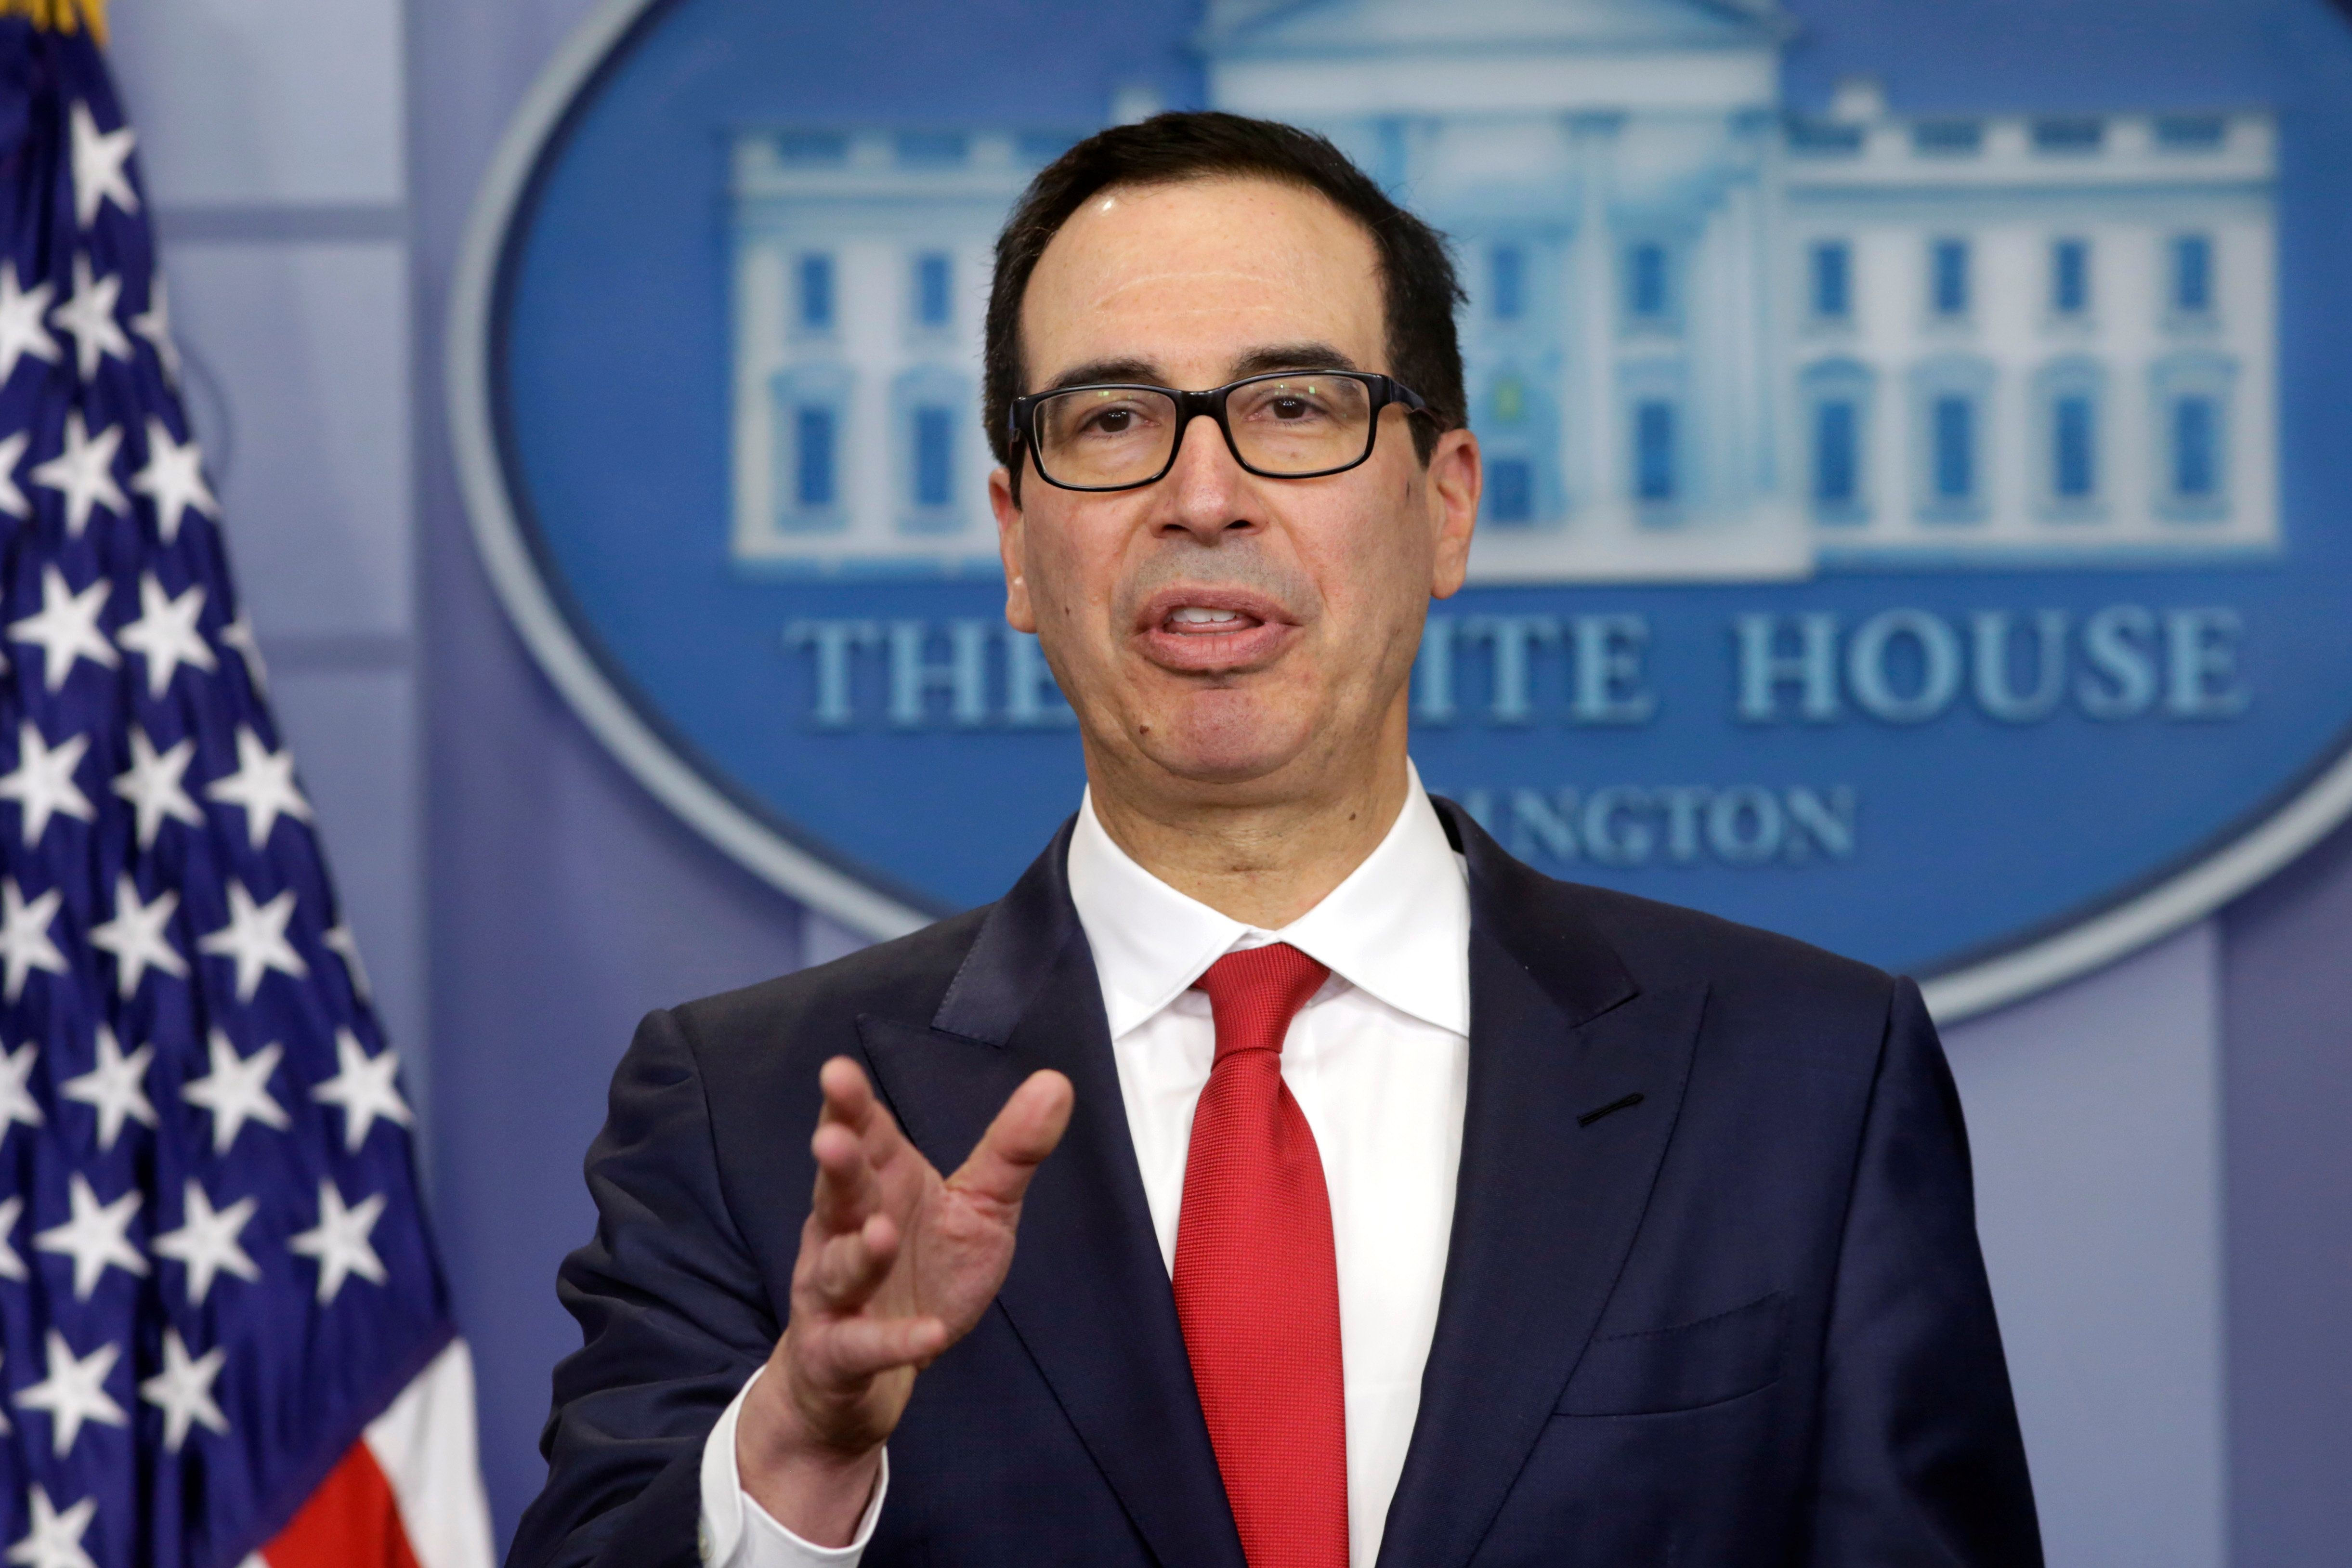 U.S. Treasury Secretary Steve Mnuchin speaks during a news briefing at the White House in Washington, U.S., to announce sanctions against Venezuela, August 25, 2017. REUTERS/Yuri Gripas